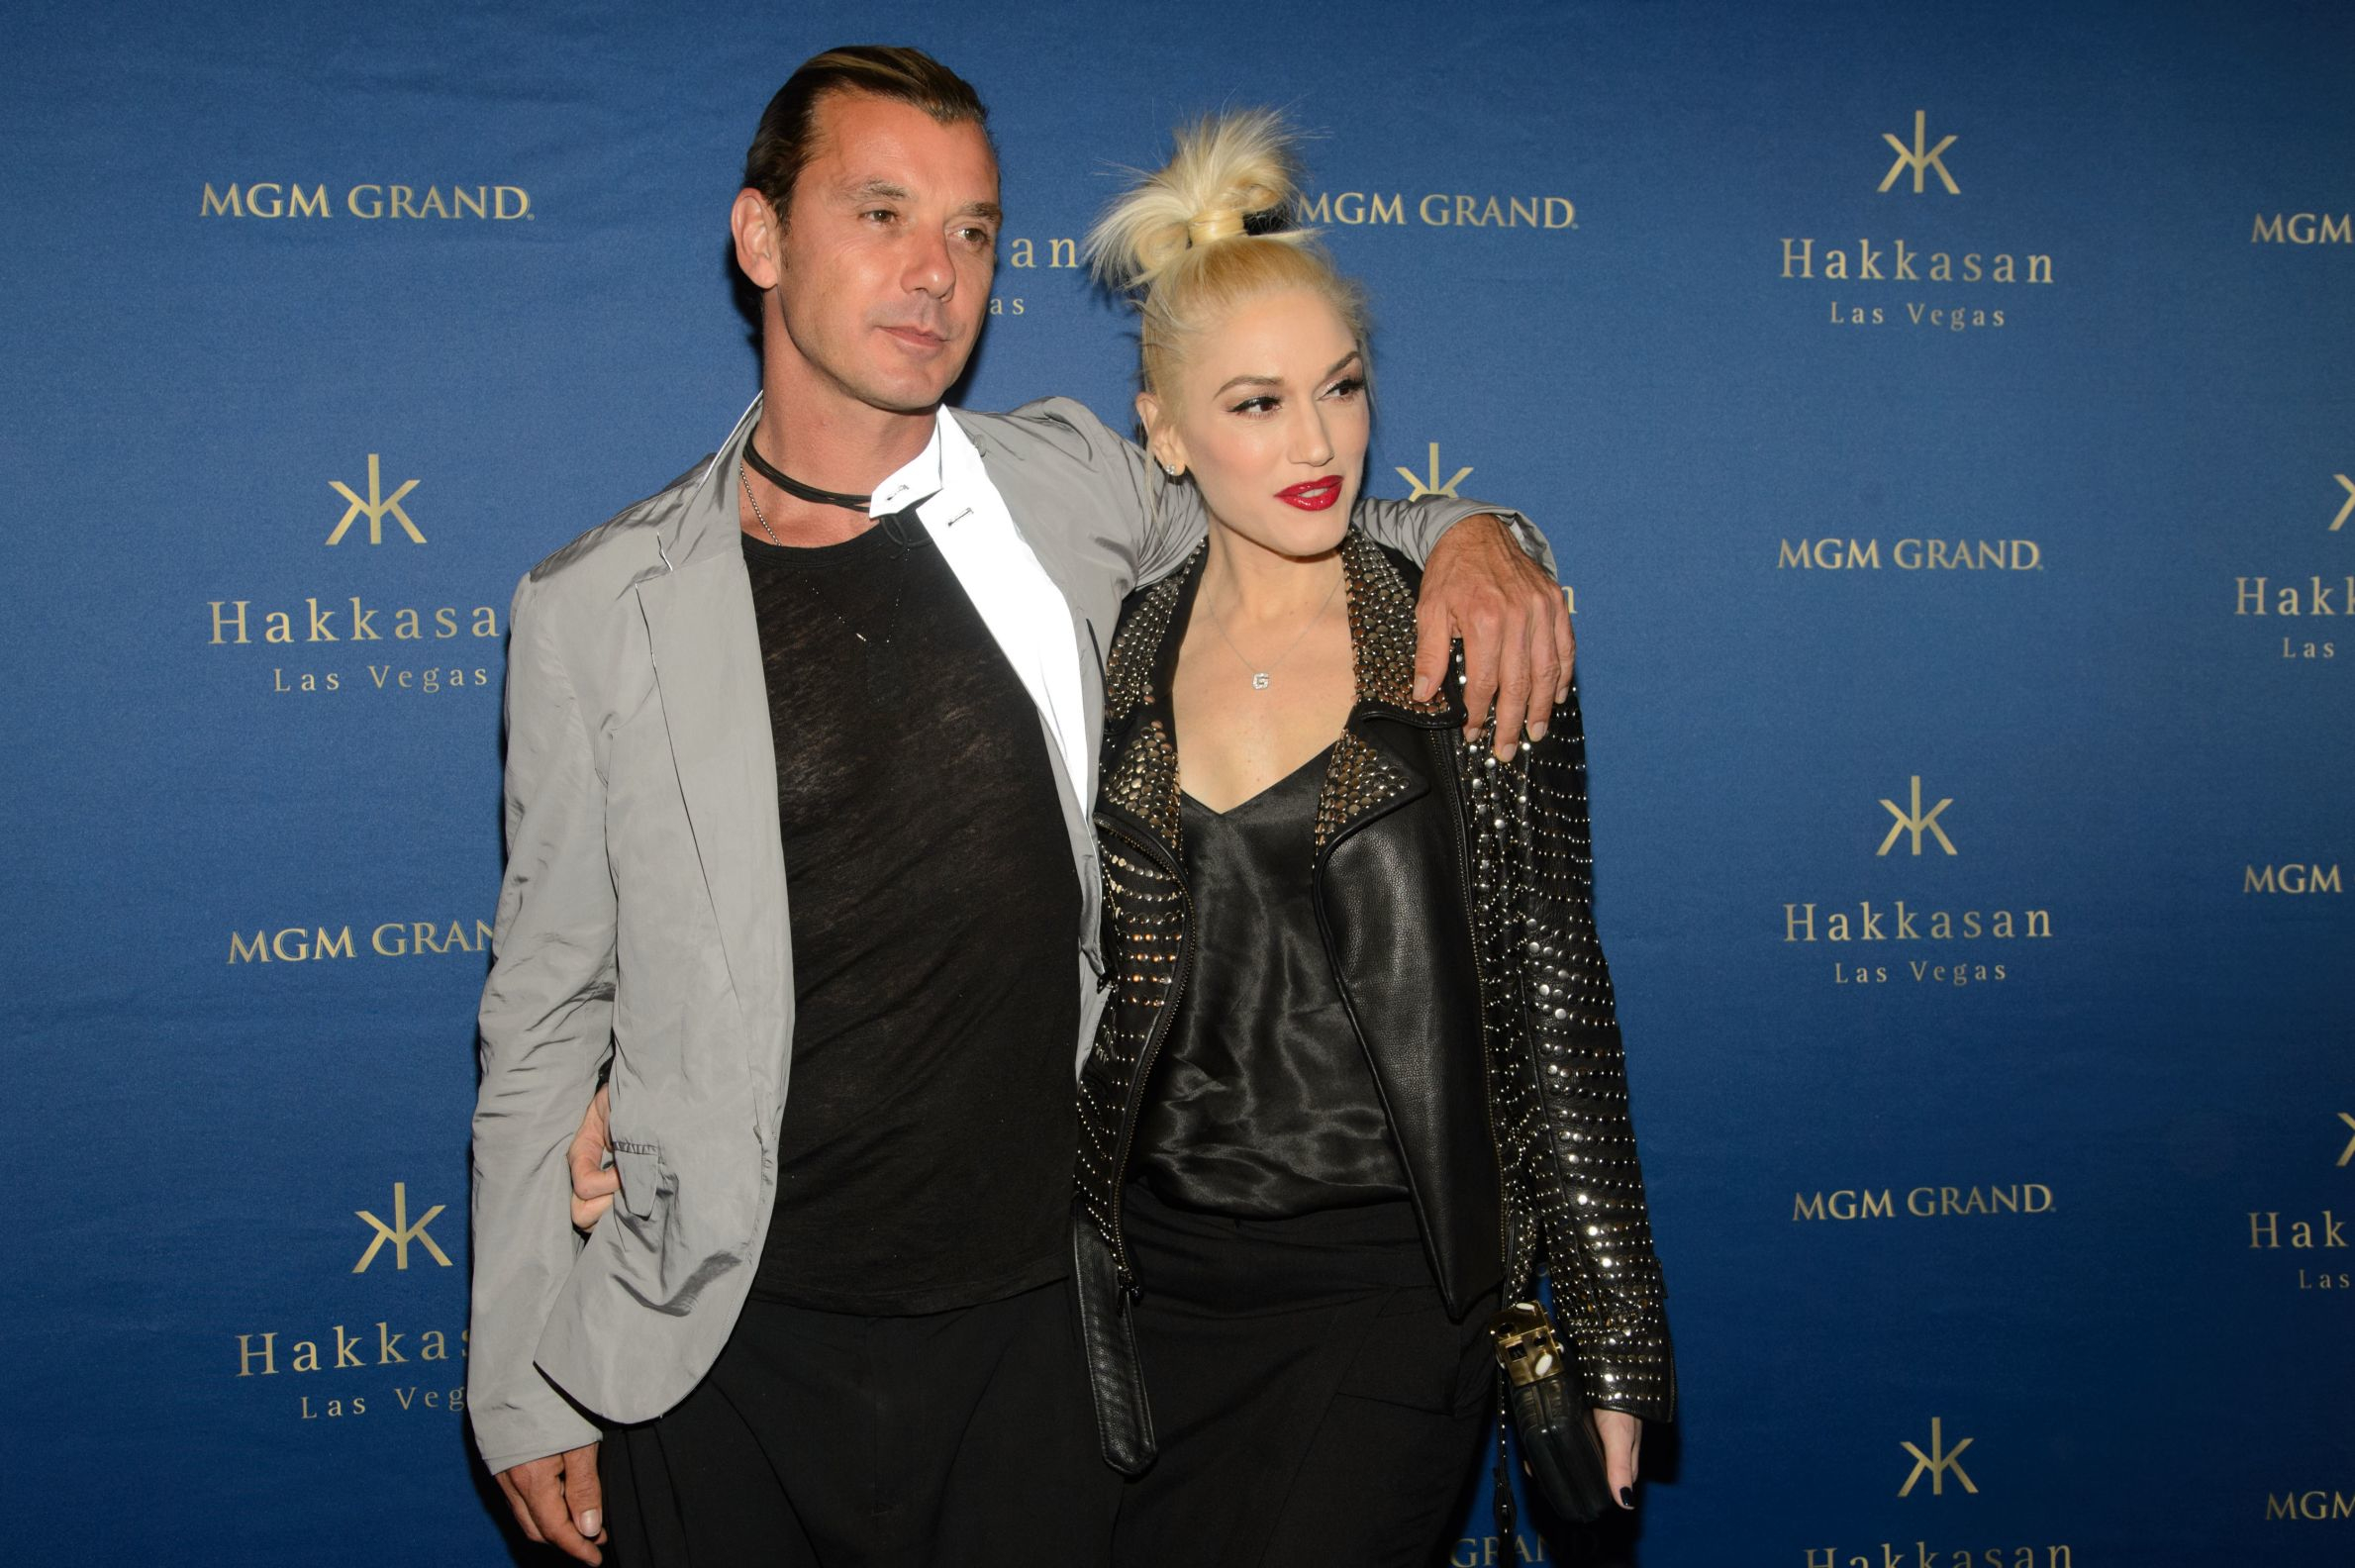 New details about Gwen Stefani and Gavin Rossdale's custody mediation